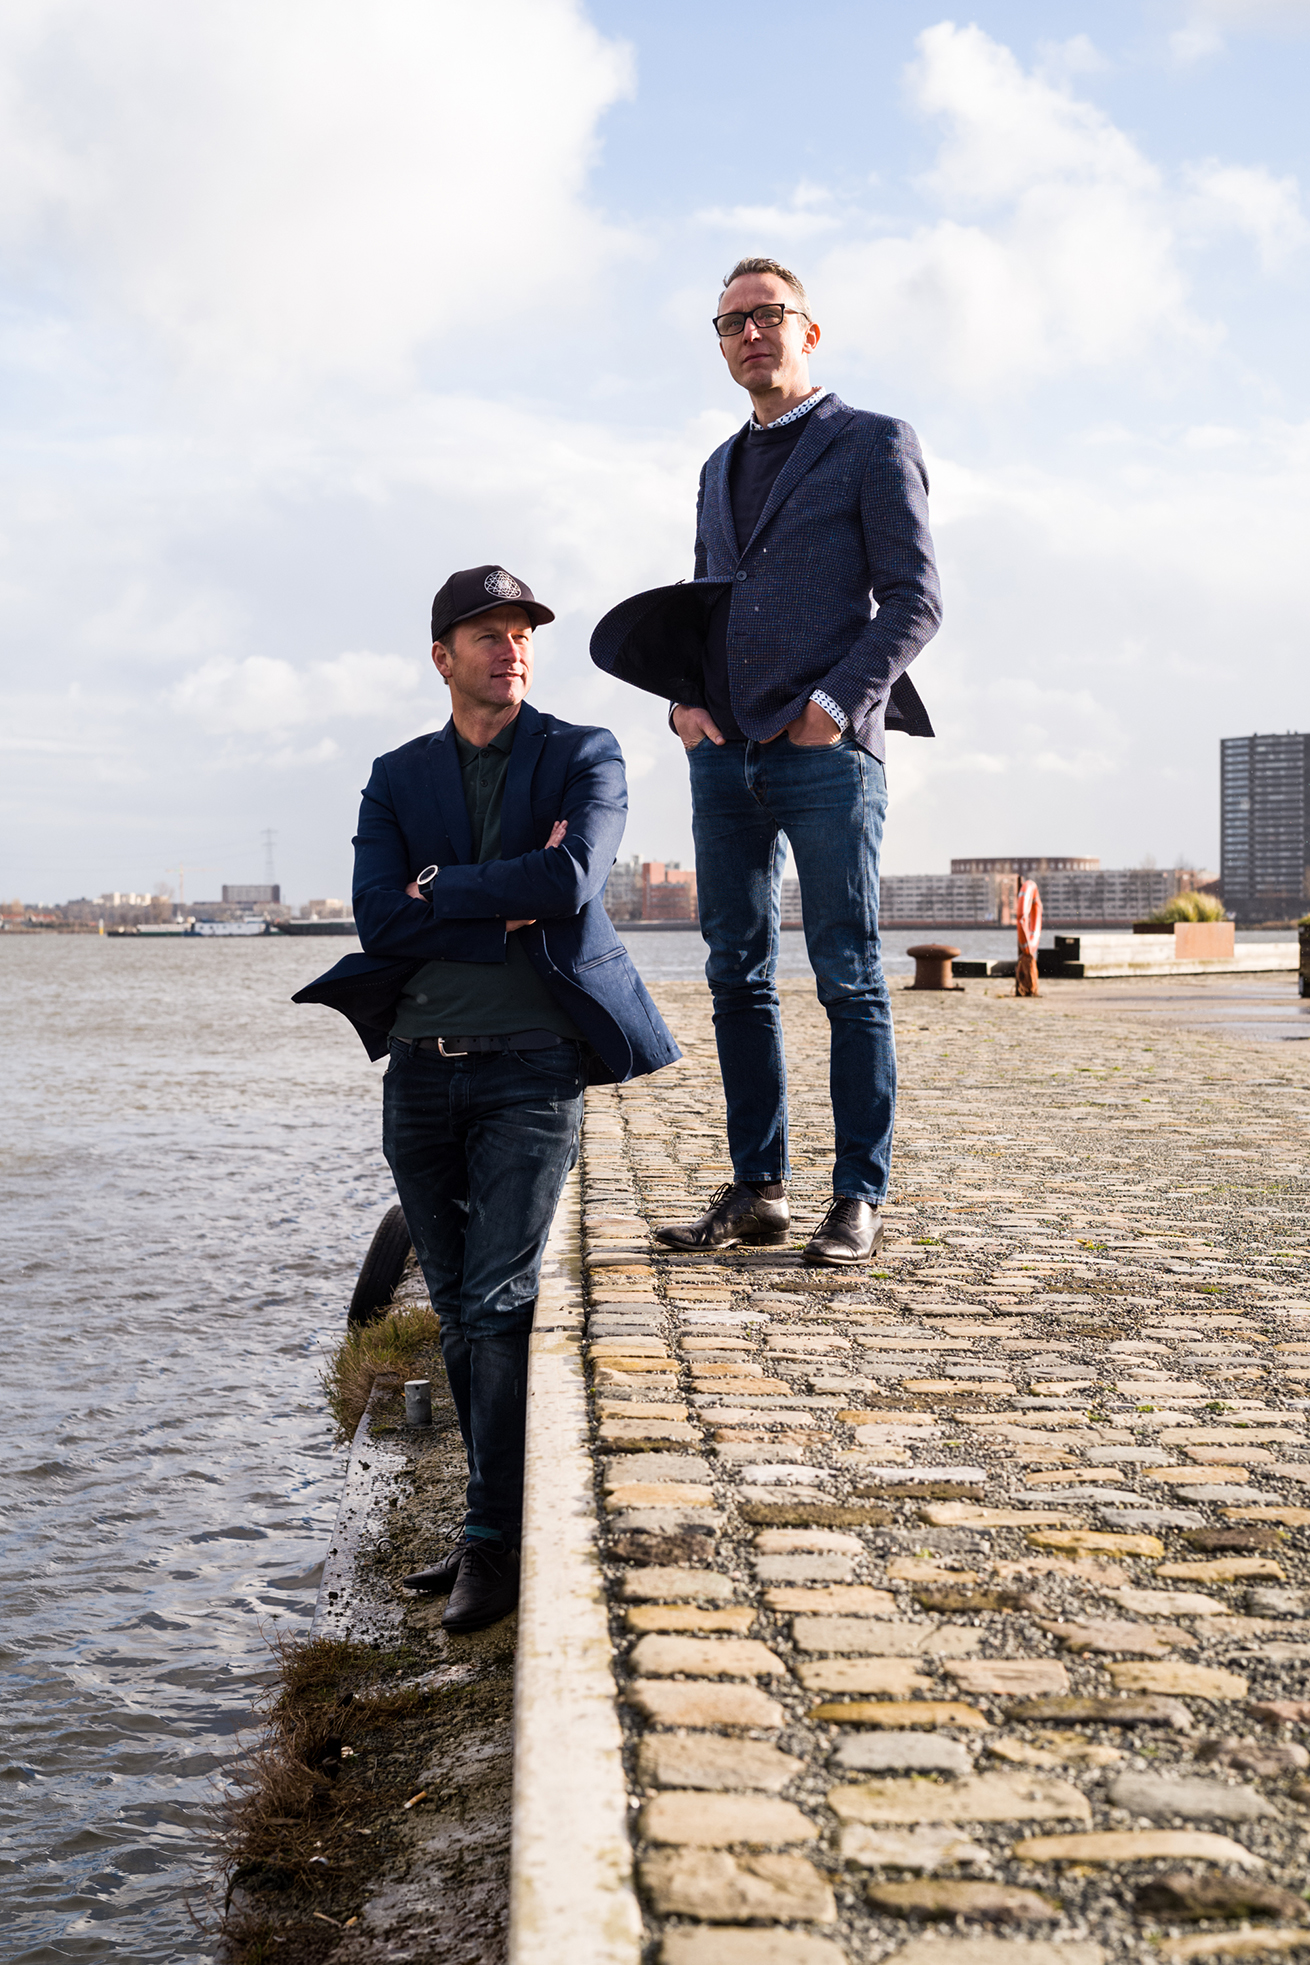 Co-founders of Tuttobene, Victor le Noble and David Heldt. Portrait by Boudewijn Bollmann